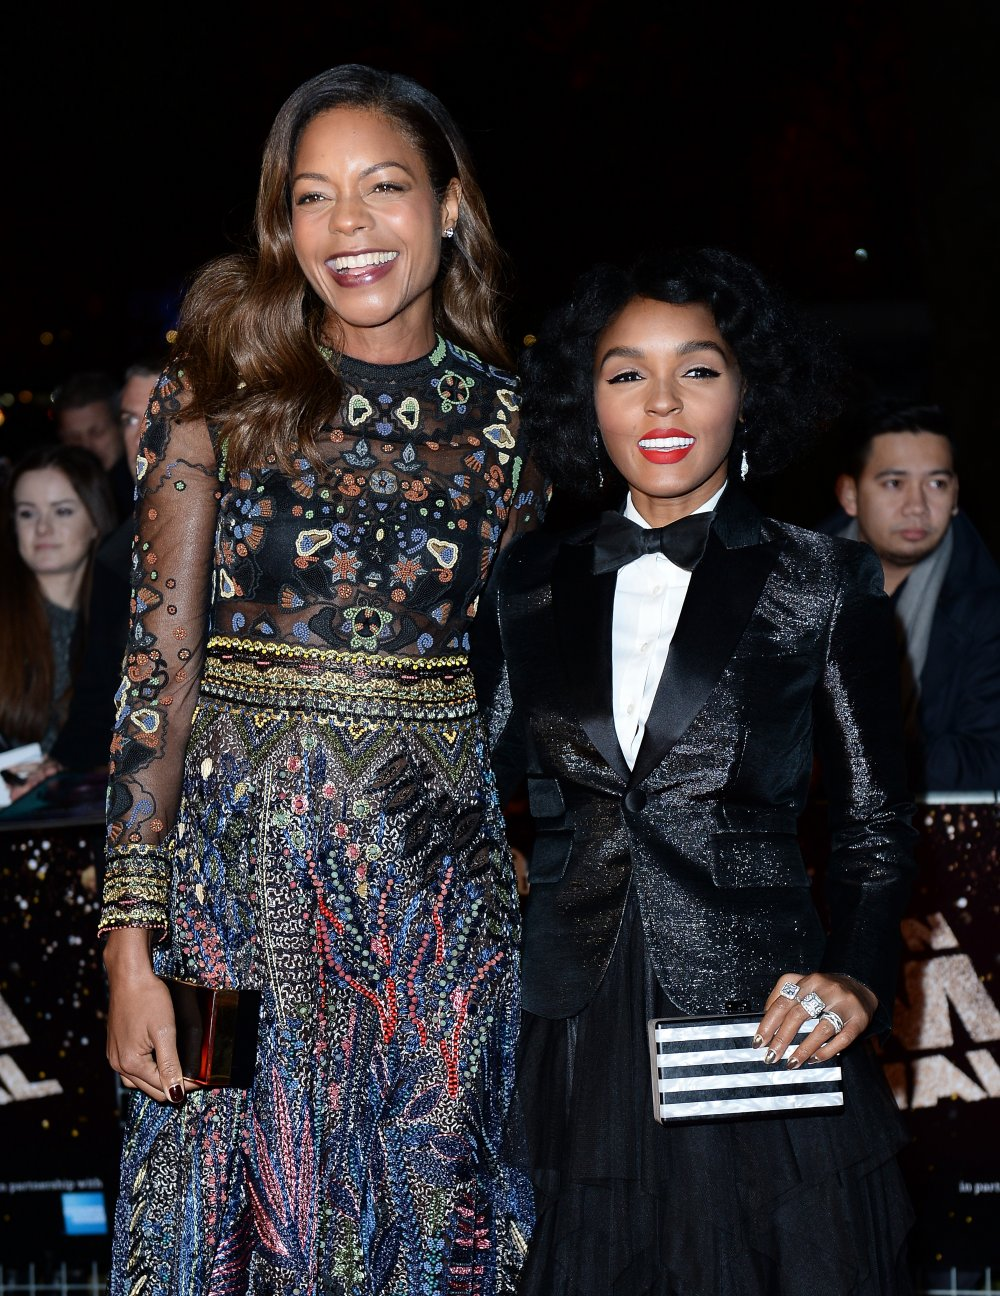 Naomie Harris and Janelle Monáe at the European premiere of Moonlight